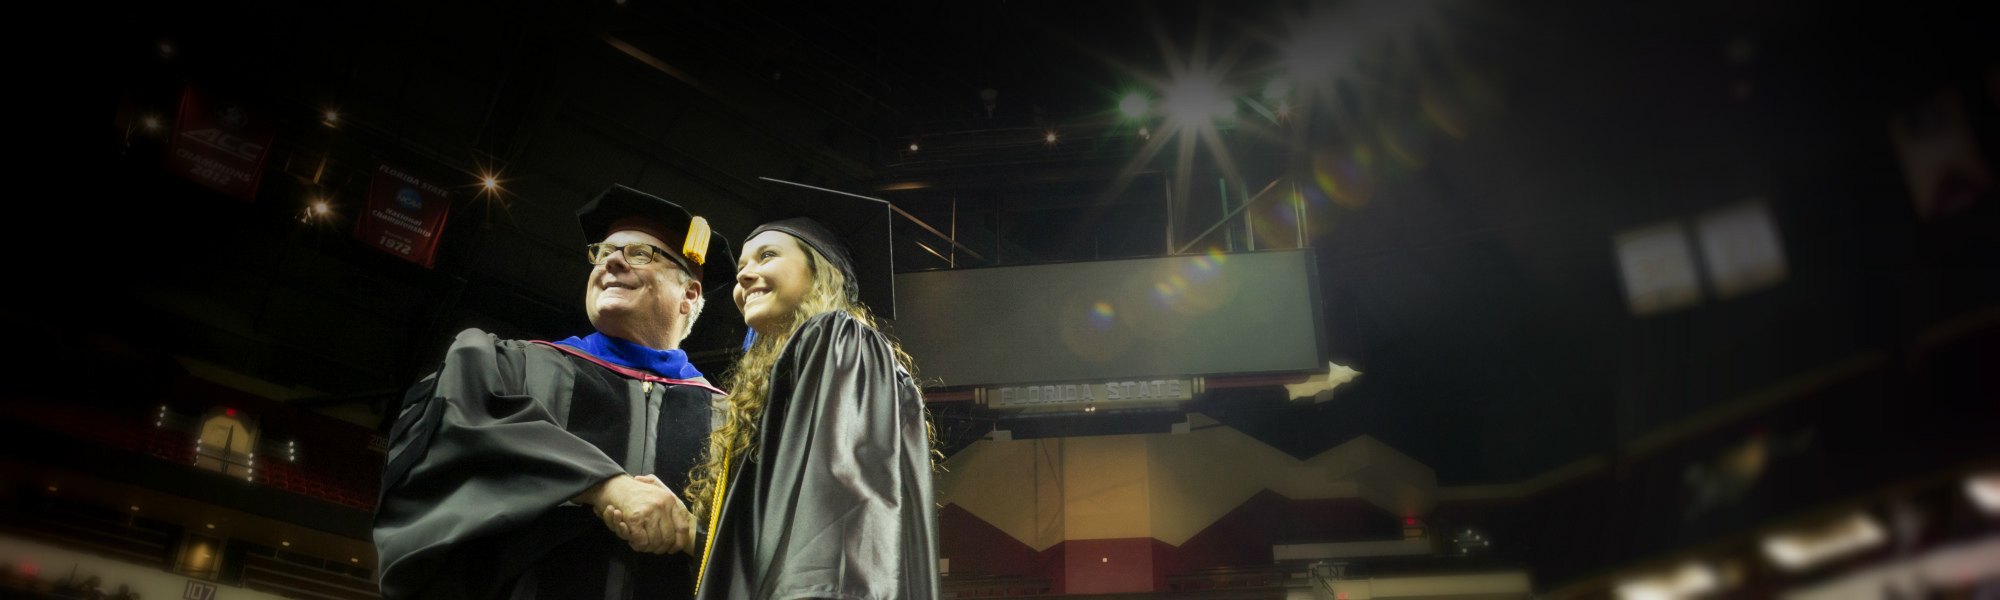 A graduate shakes hands with the President while posing for a picture at commencement